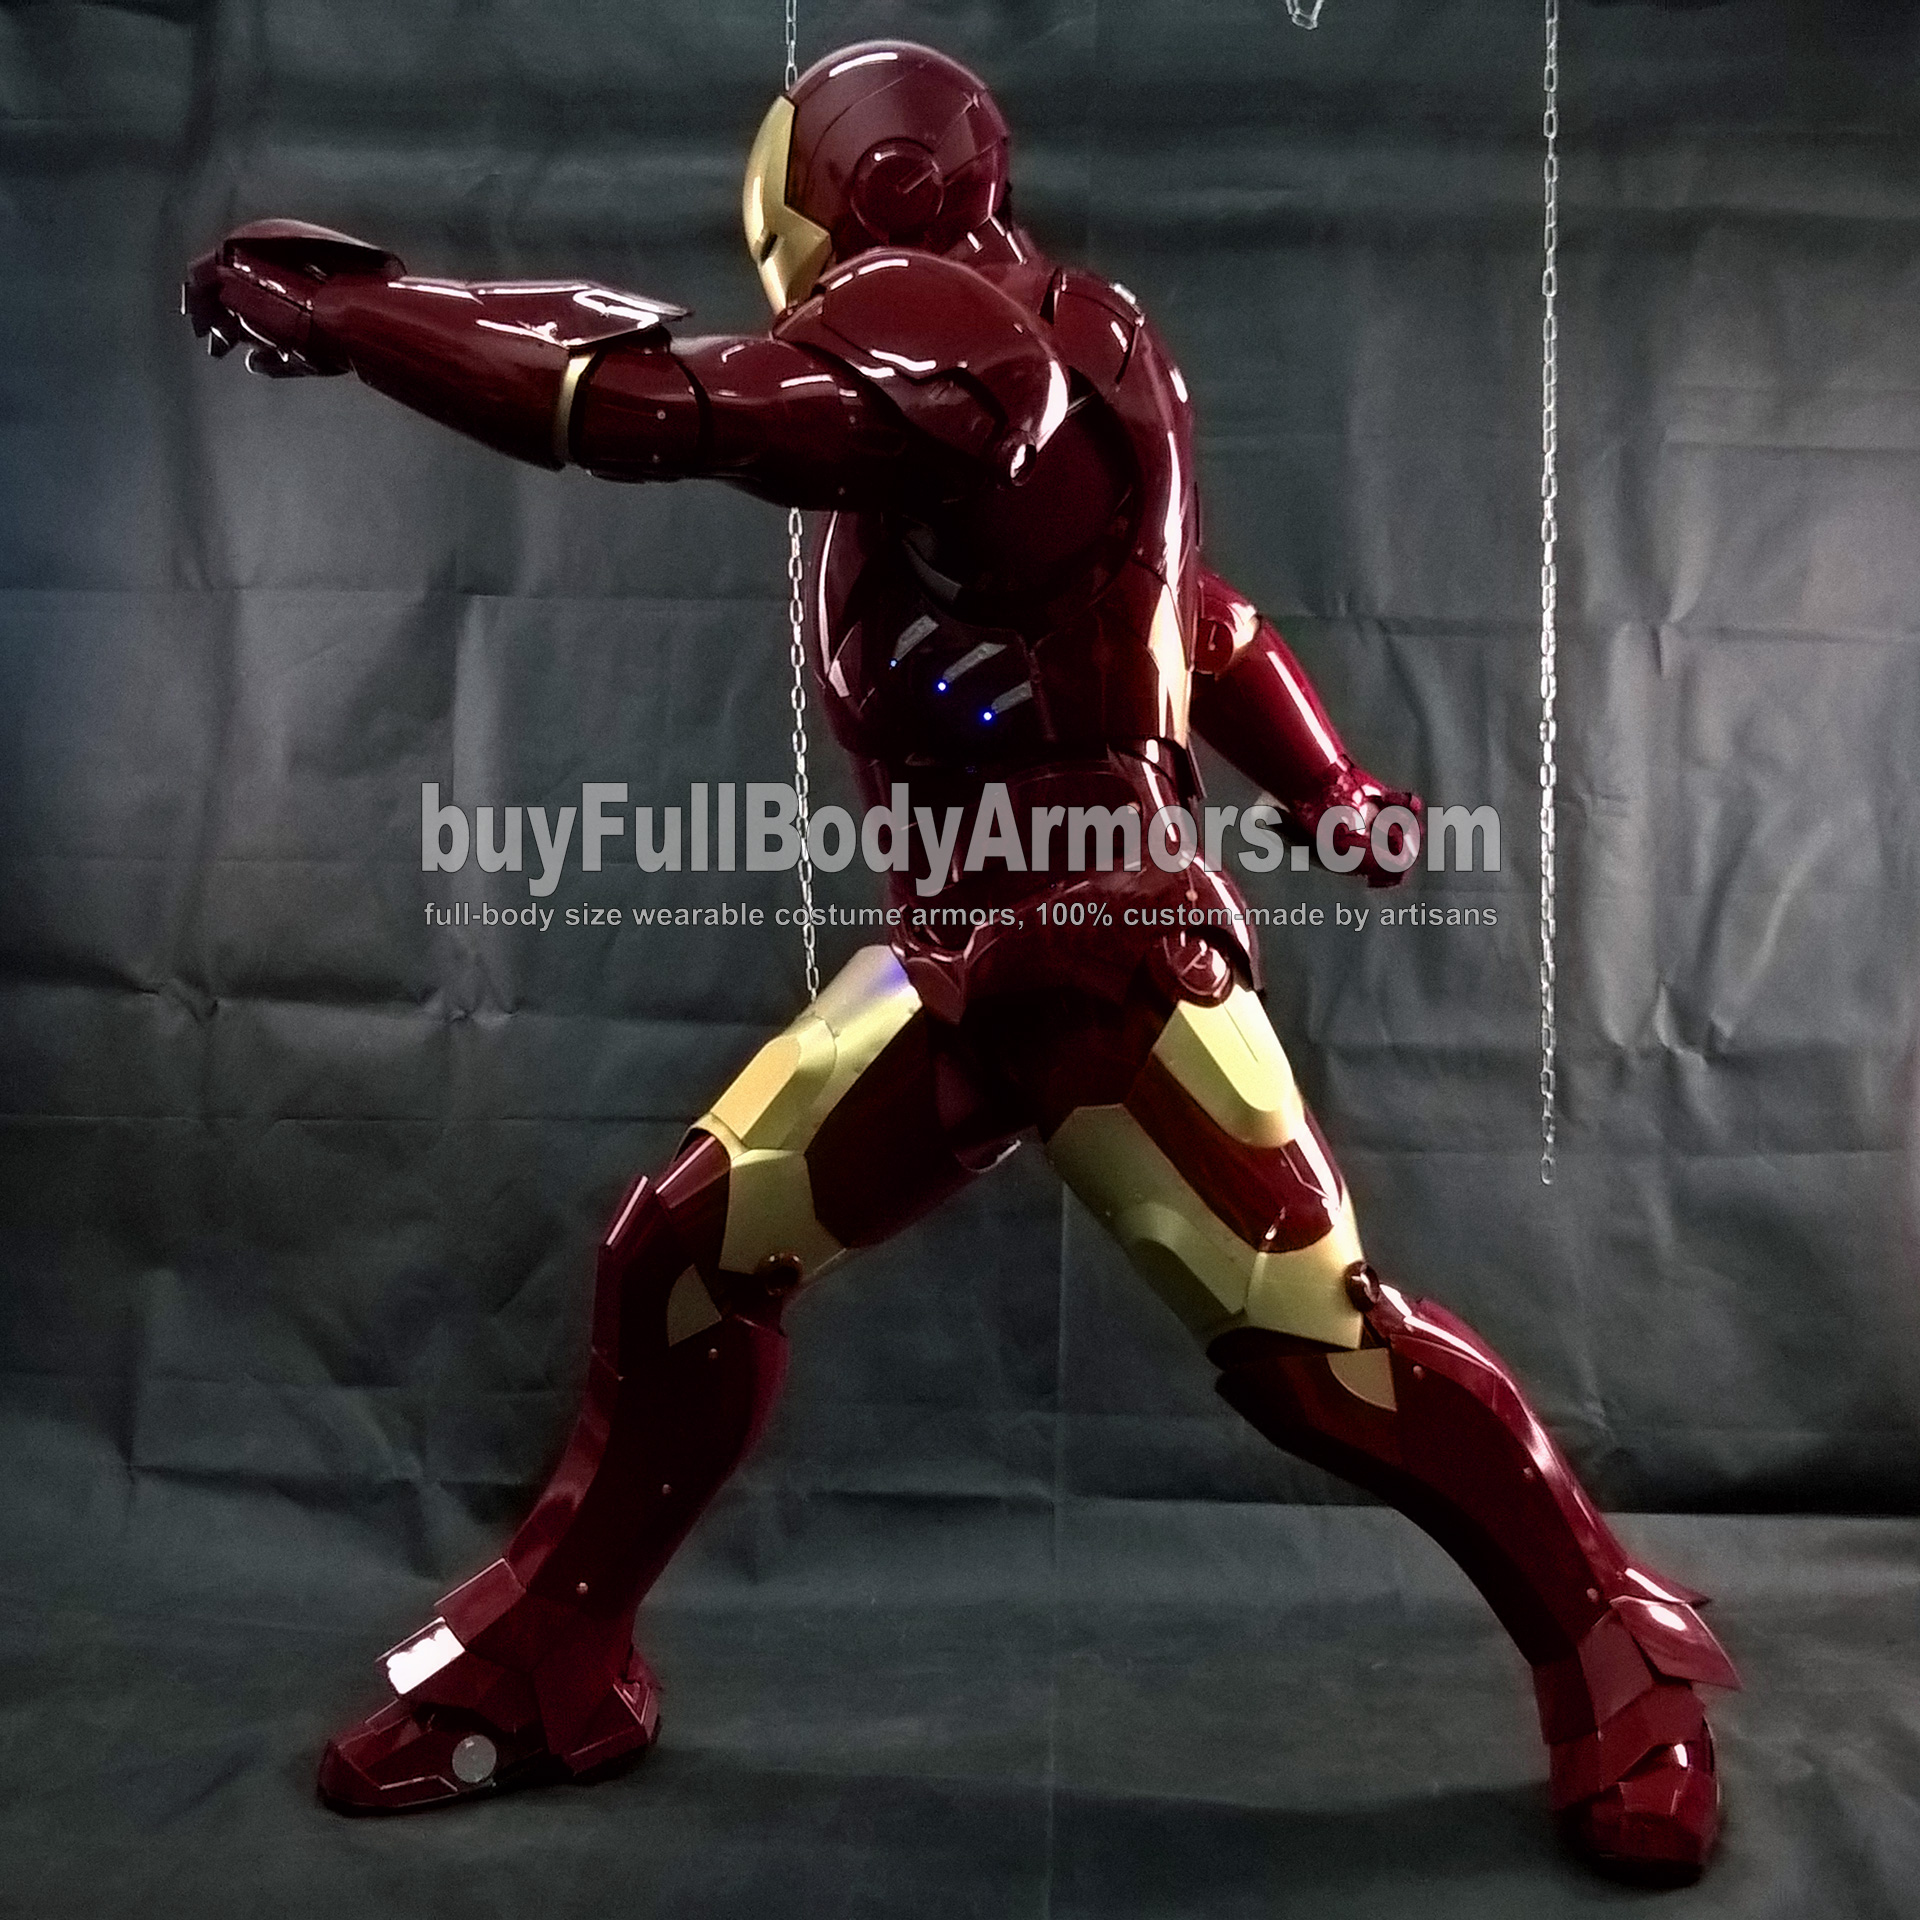 Wearing the Wearable Iron Man Suit Mark 3 III Armor Costume - Photos 4